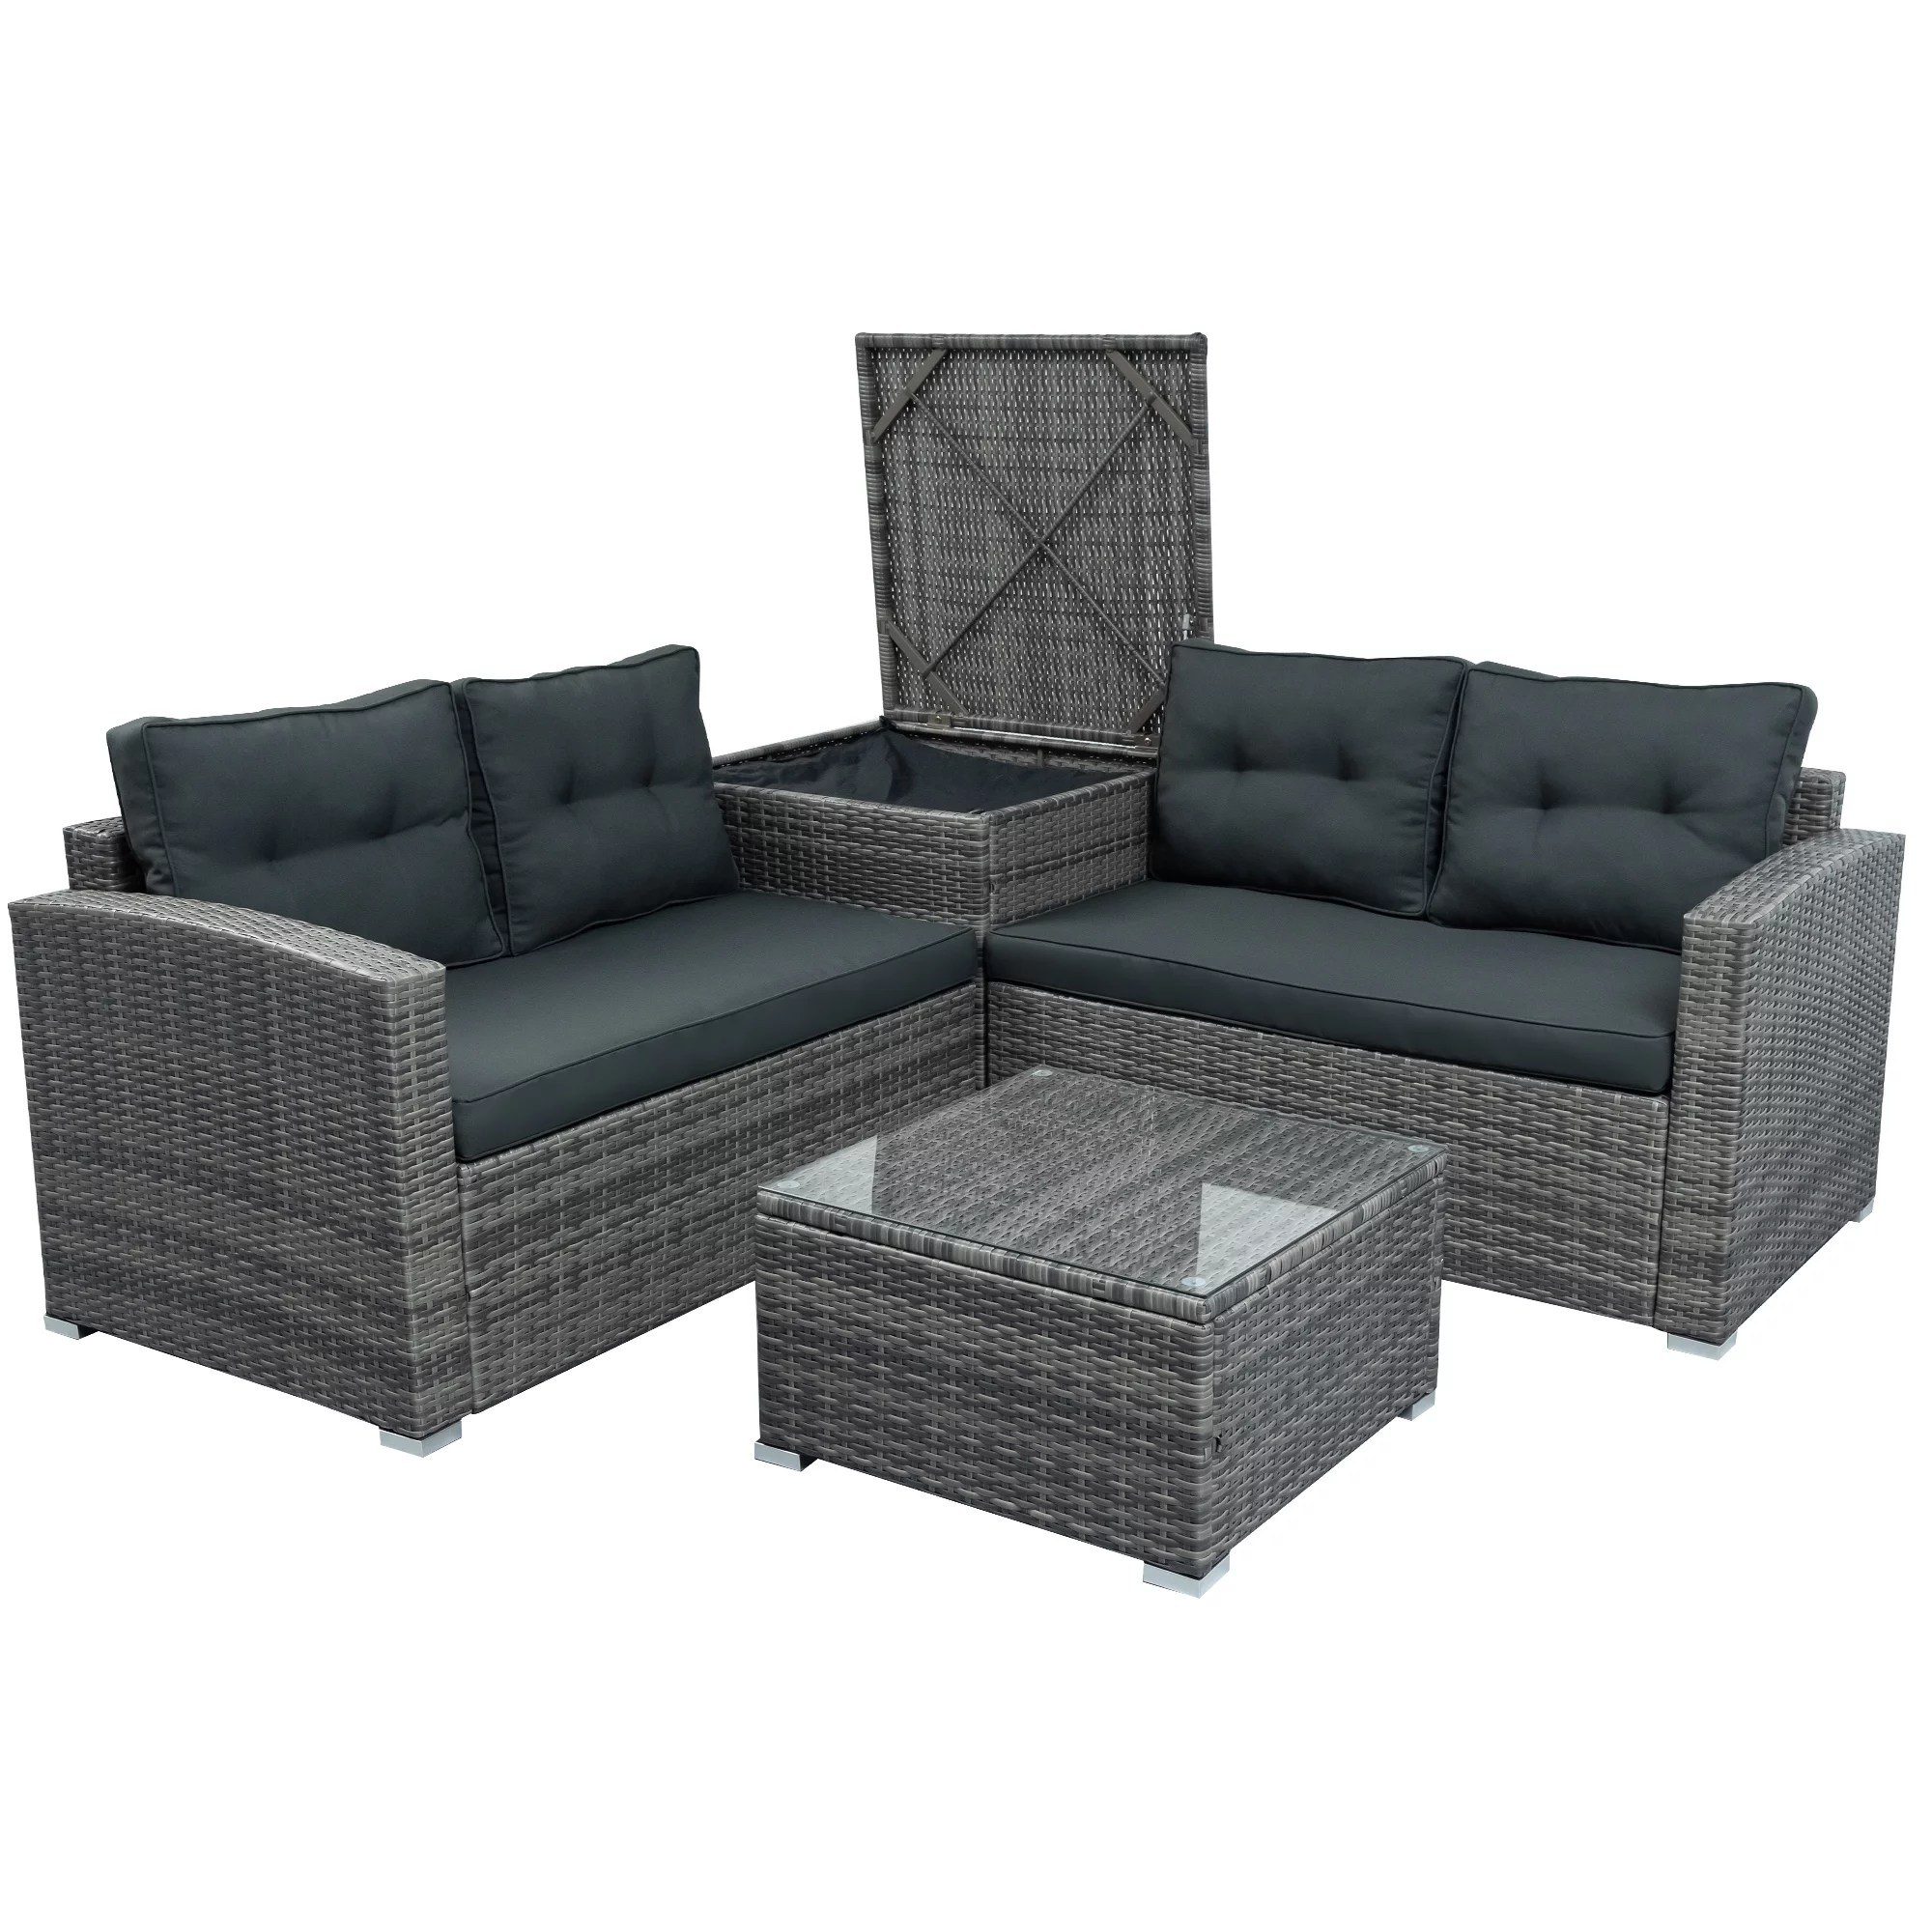 bistro outdoor wicker patio setsfor outdoor furniture 2020 upgrade 4 piece conversation furniture set w seat cushions tempered glass coffee wicker